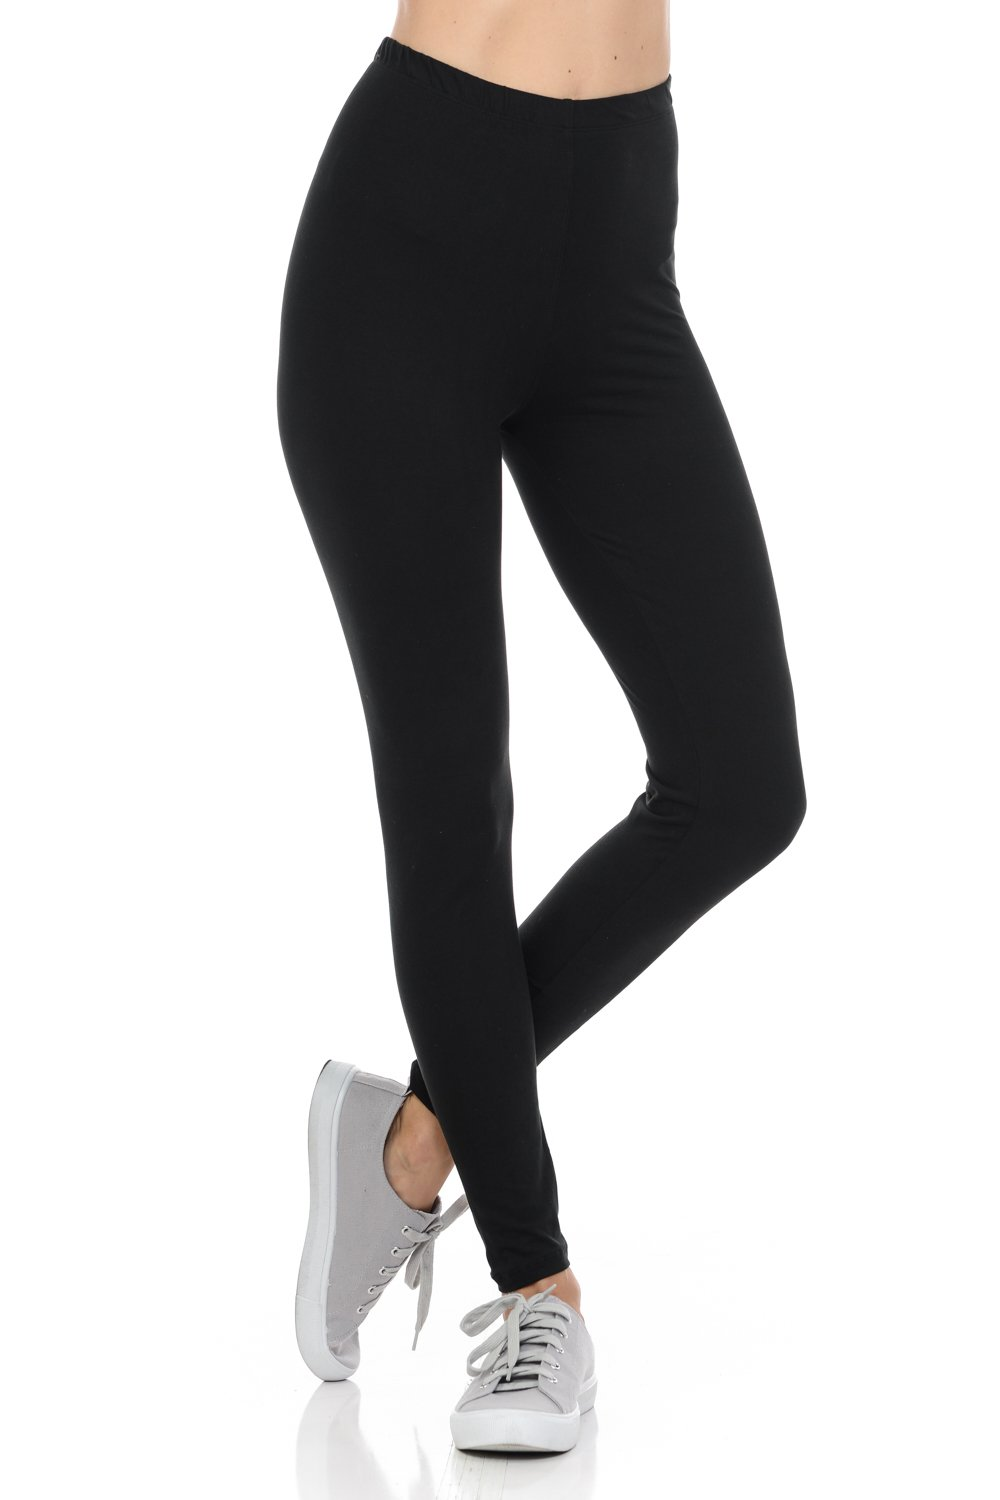 bluensquare Leggings for Juniors & Teens Premium Soft 4 Way Stretched One Size Full length-Amazon Famous Buttery soft leggings (Black, One Size | Regular)